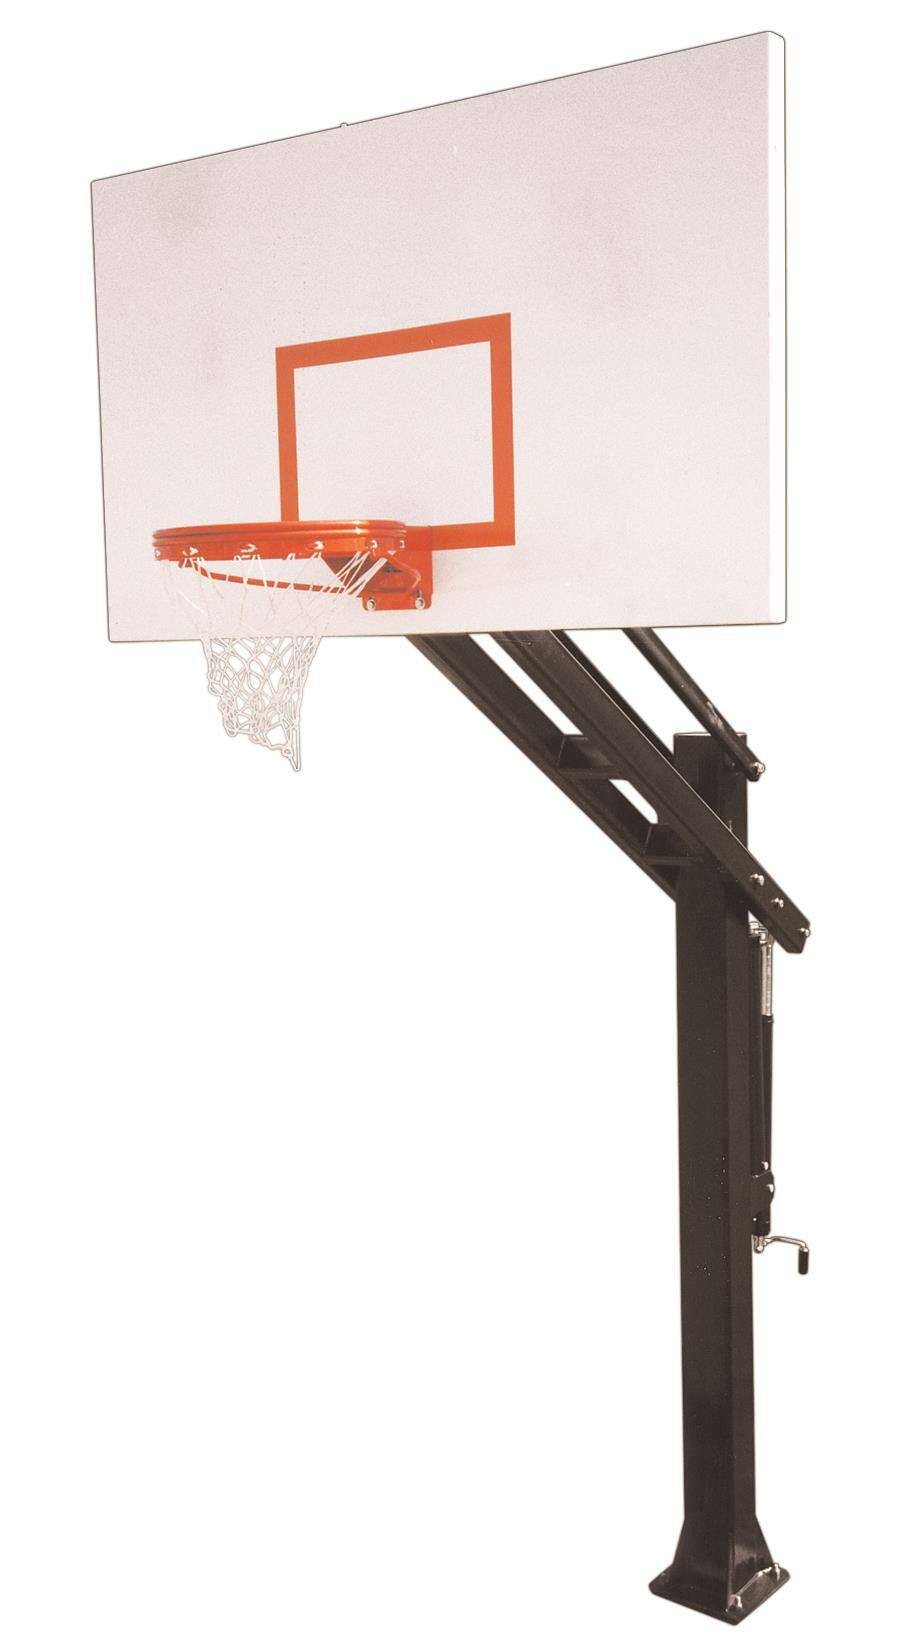 First Team Titan Excel In Ground Outdoor Adjustable Basketball Hoop 72 inch Steel